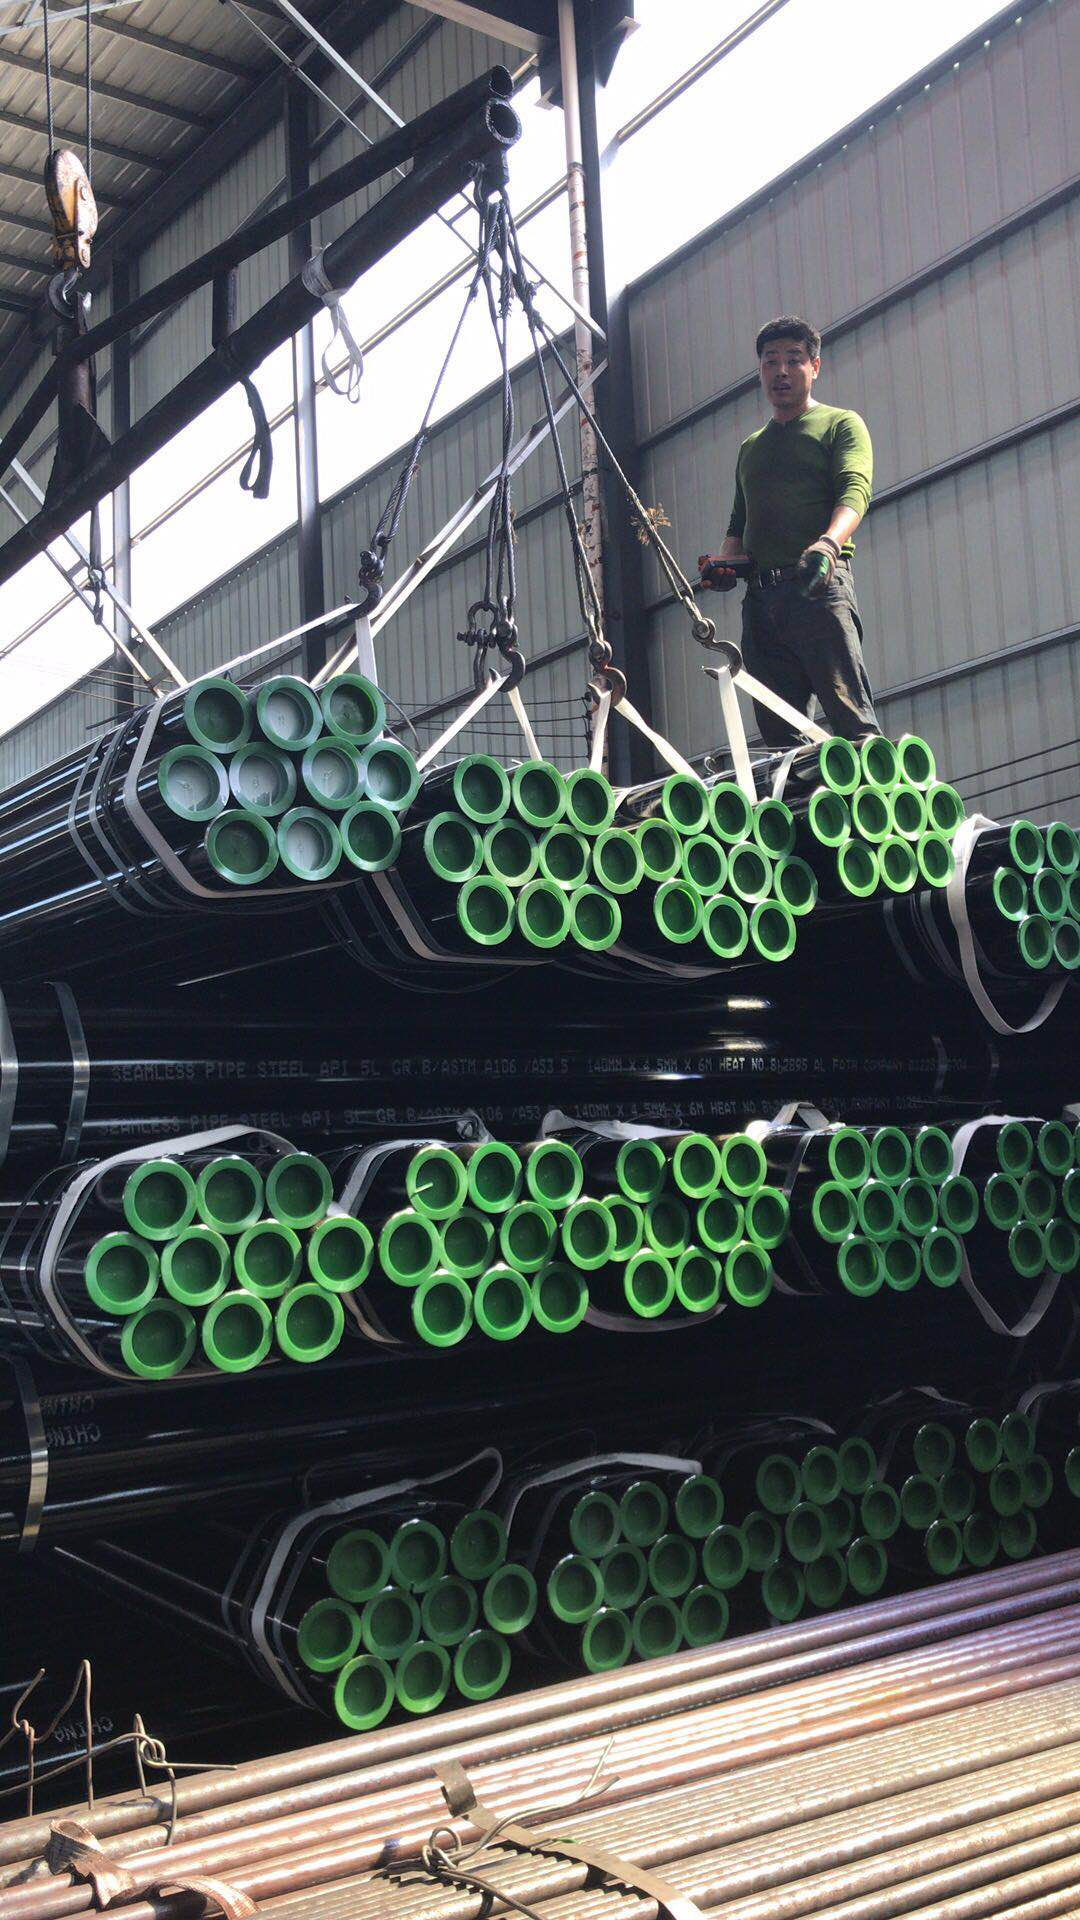 ASTM A106 SEAMLESS STEEL PIPE 2